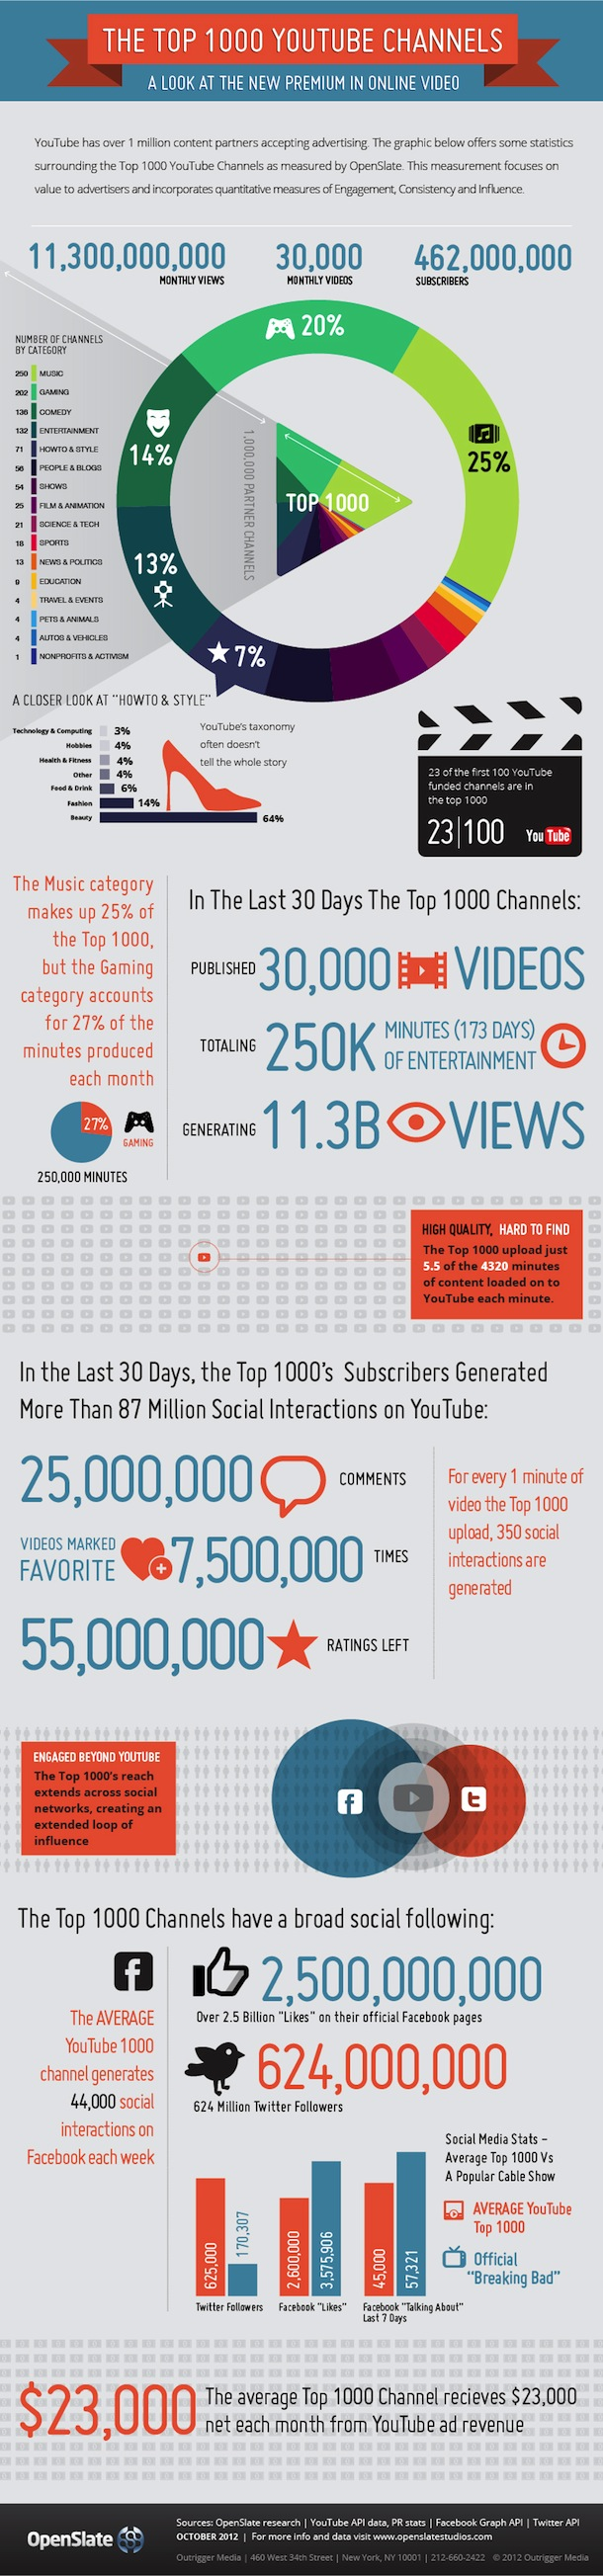 Successful YouTube Channels-Infographic